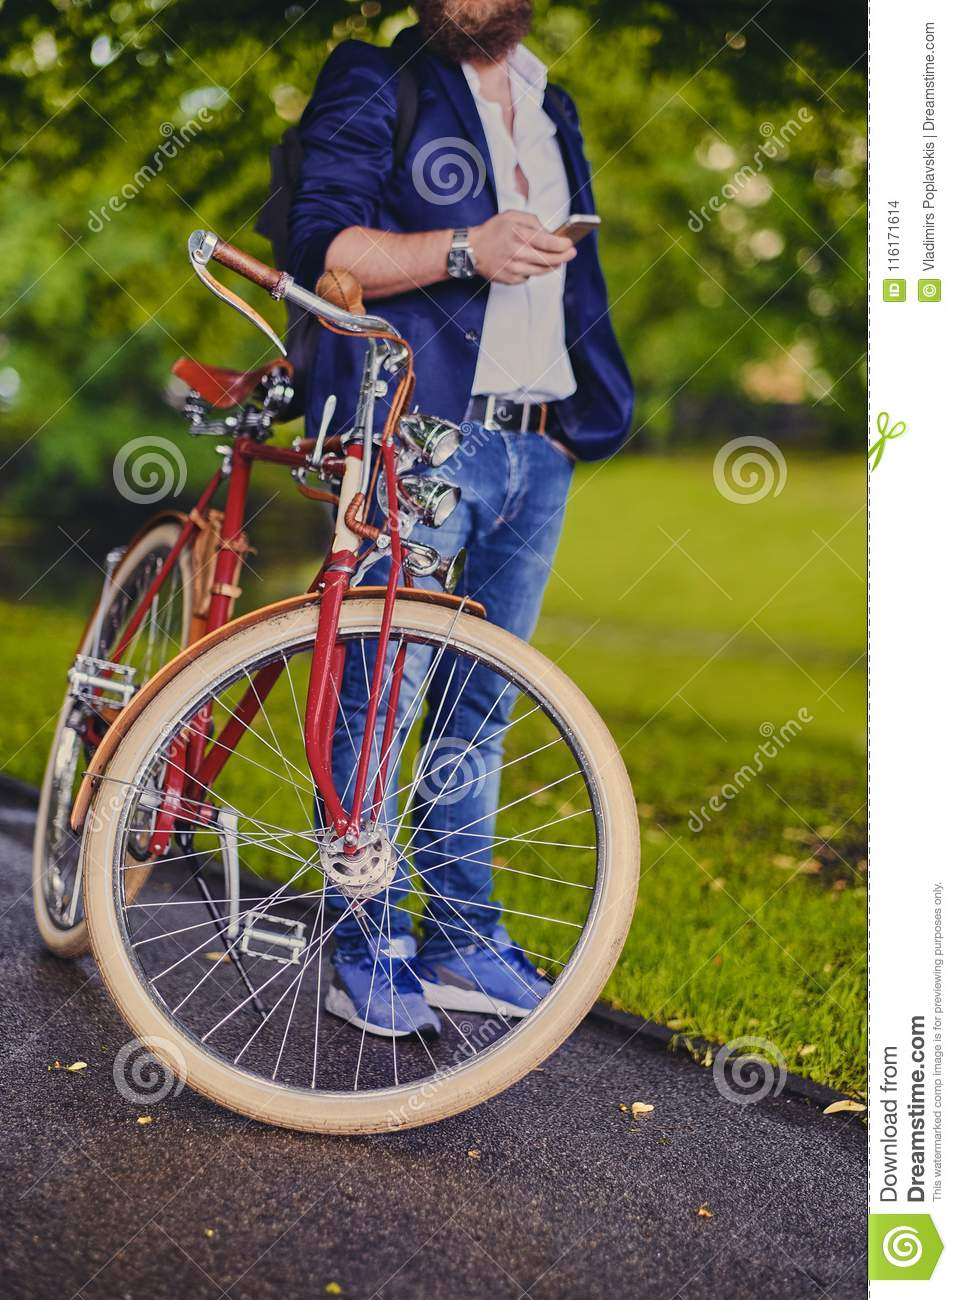 Image of a man on a retro bicycle.